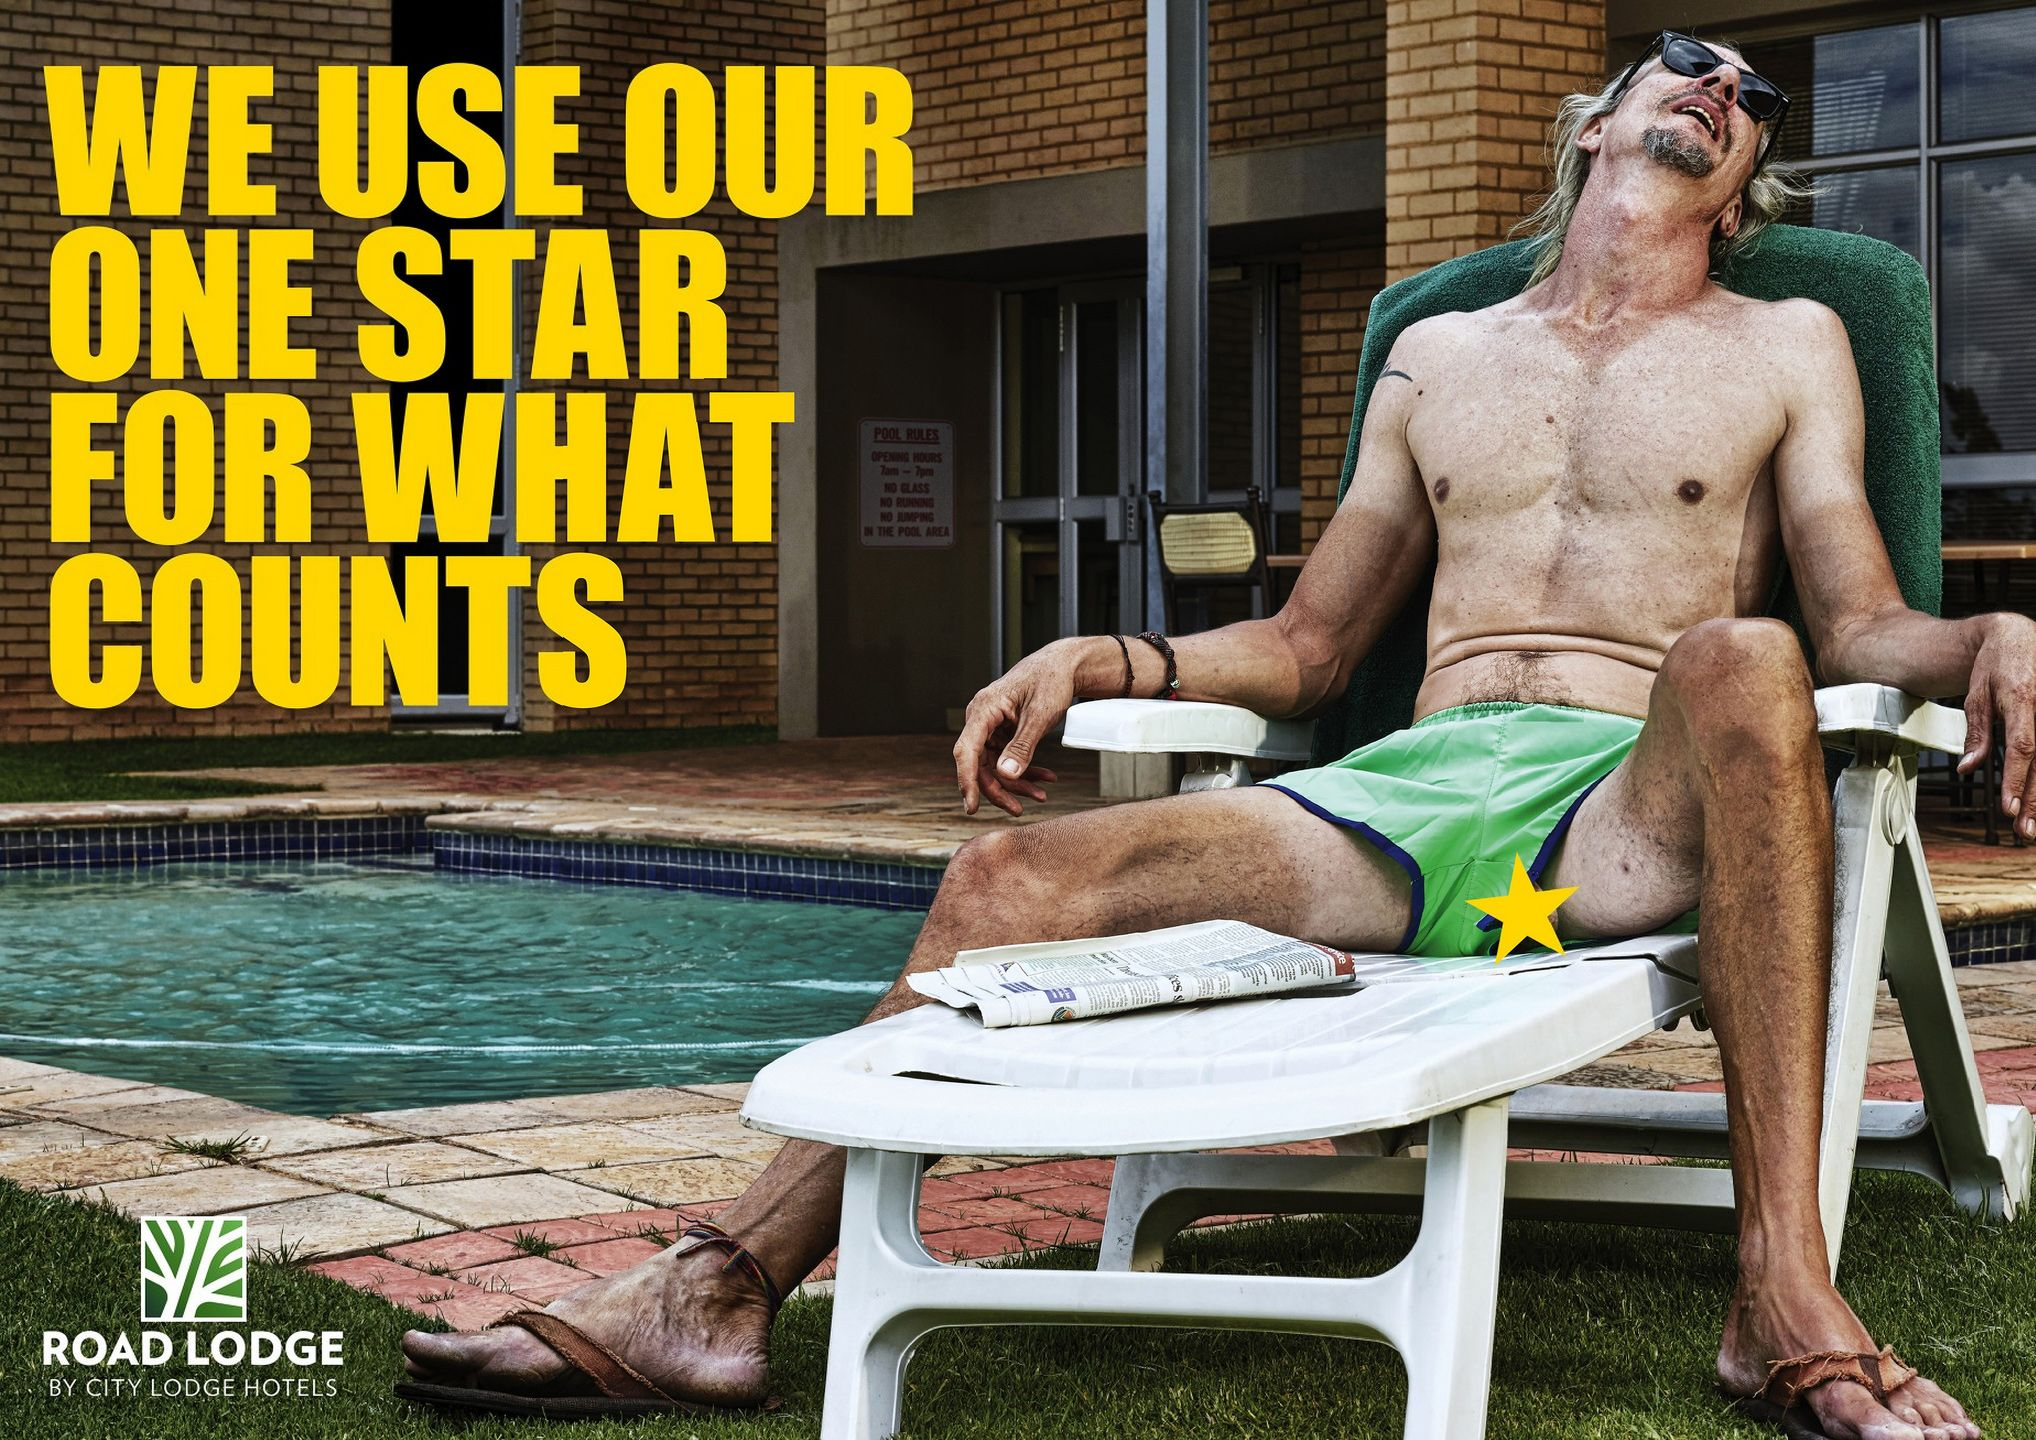 We use our one star for what counts. Advertising Agency